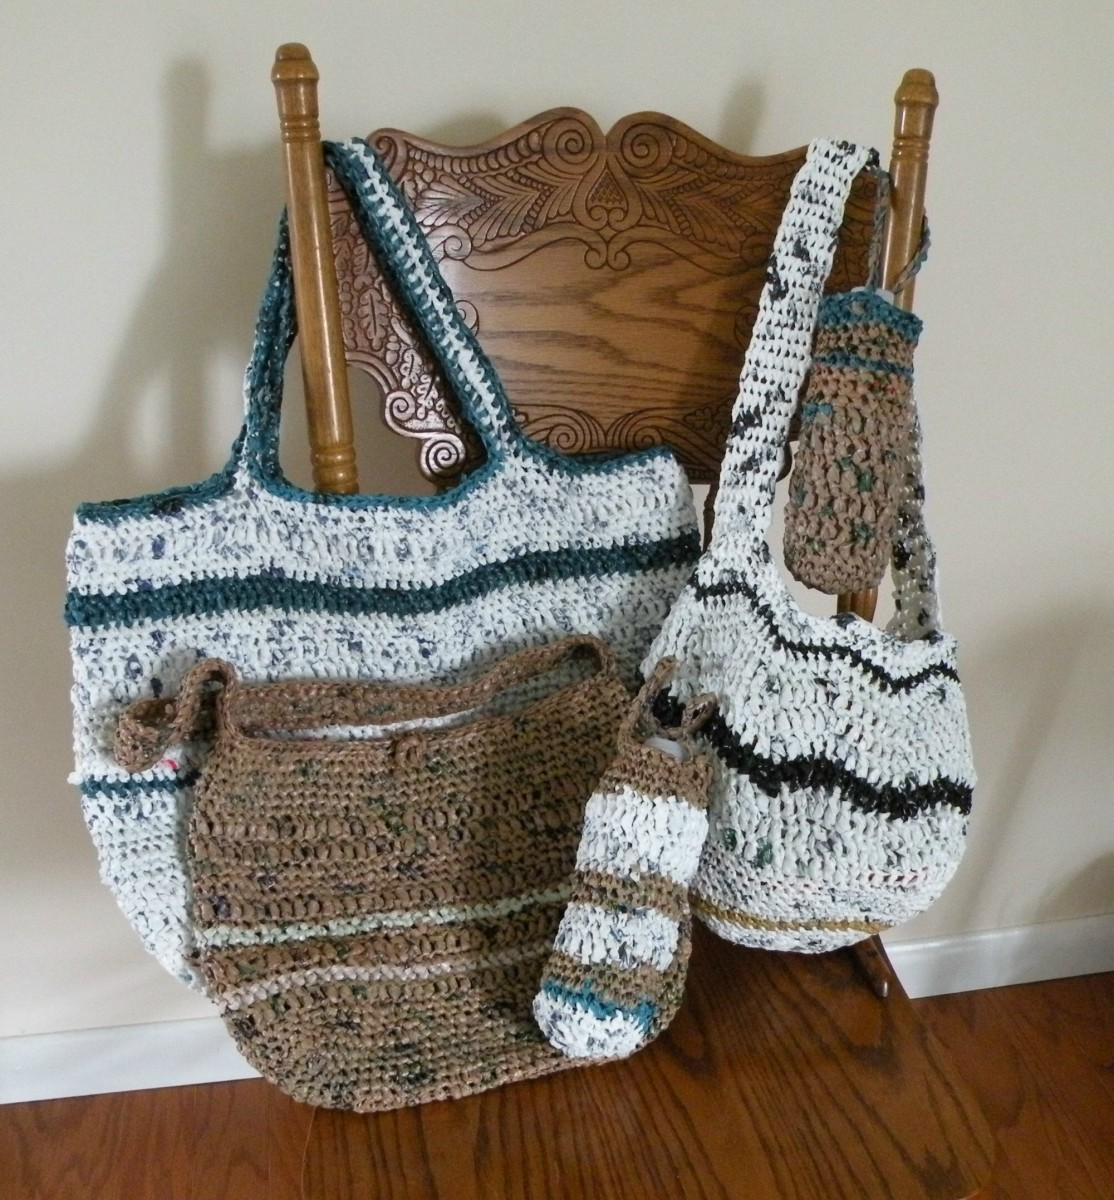 Crochet Fun Beach Bags from Recycled Plastic Bags